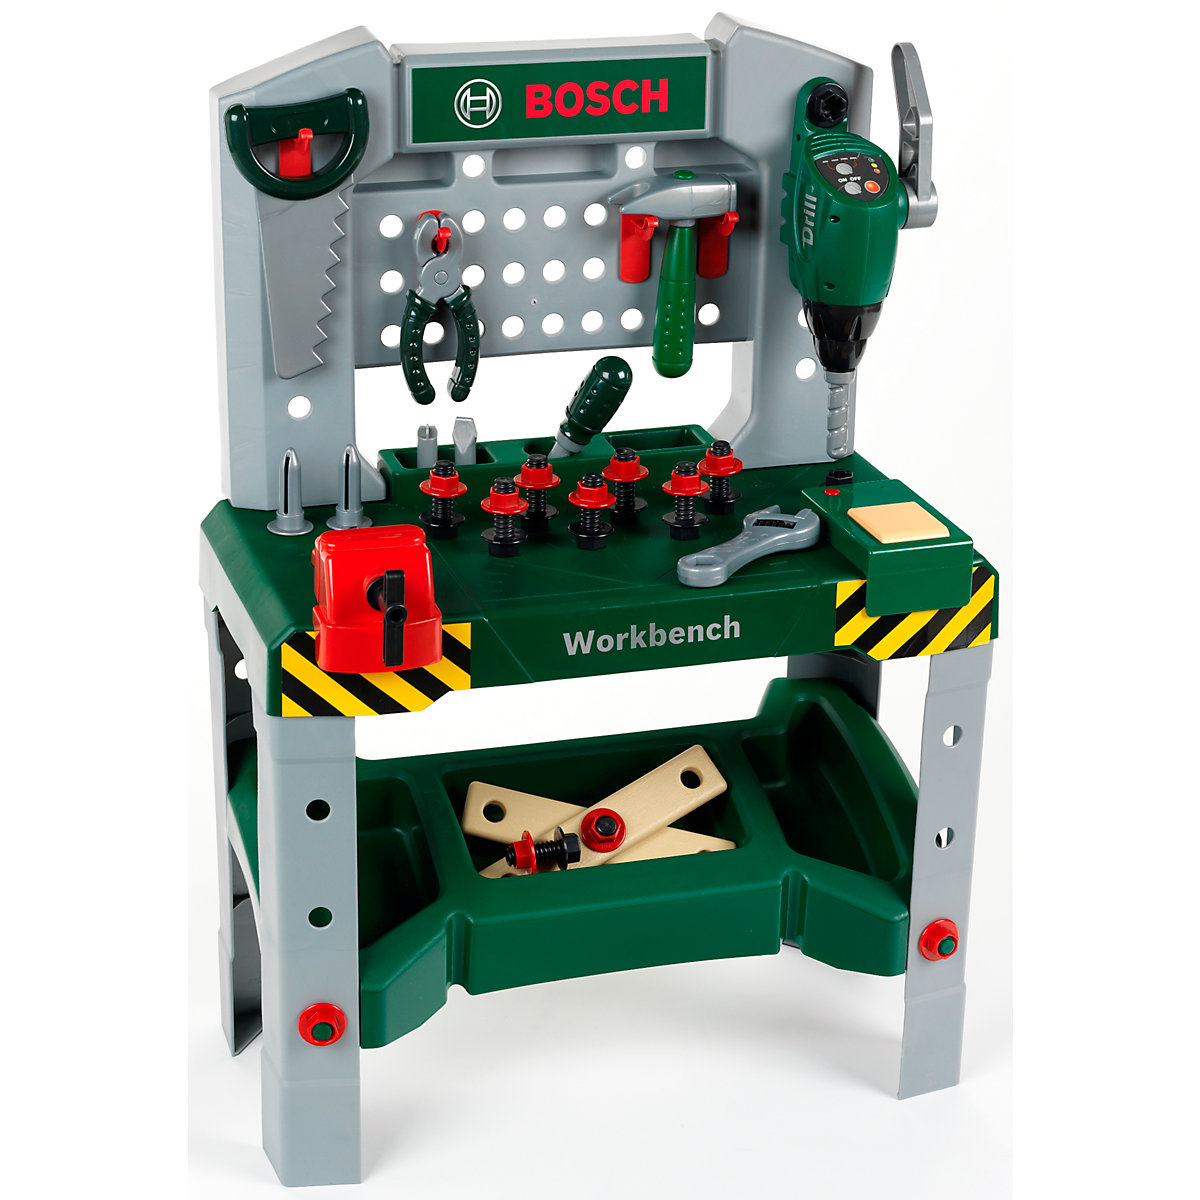 New ELC Unisex Bosch Workbench with Sounds Toy From 3 years - Dressing Up Gifts